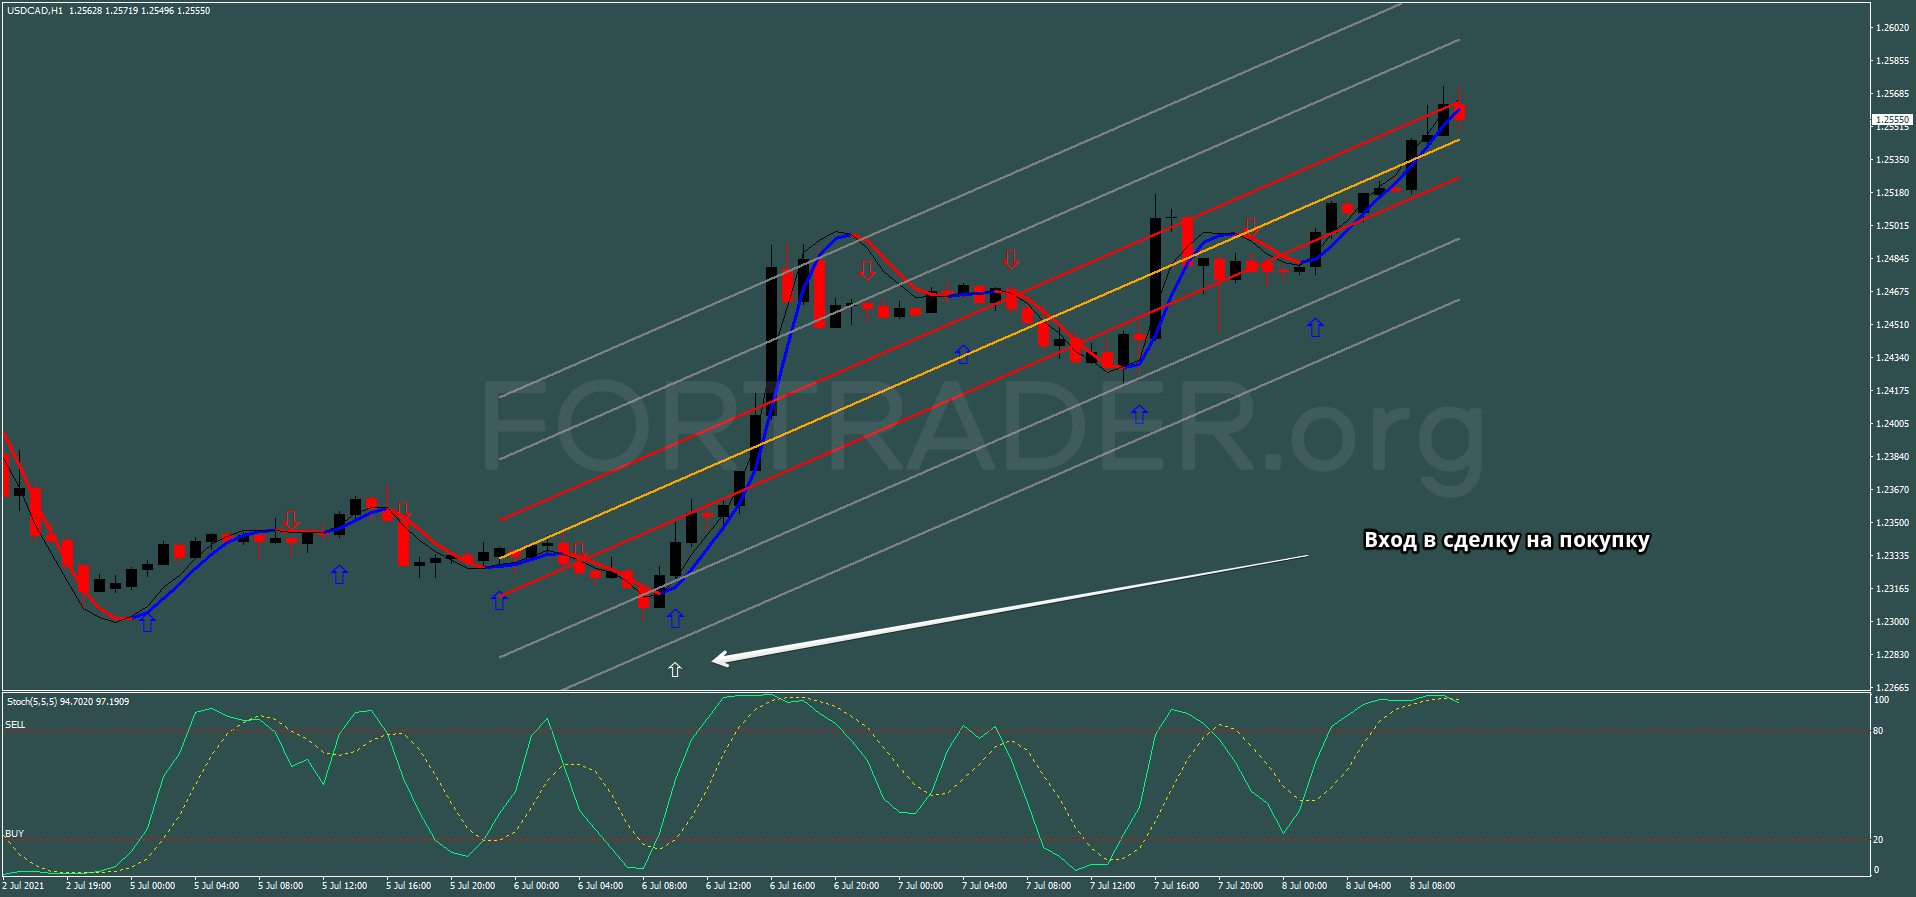 Stochastic With Regression Channel Trading Strategy